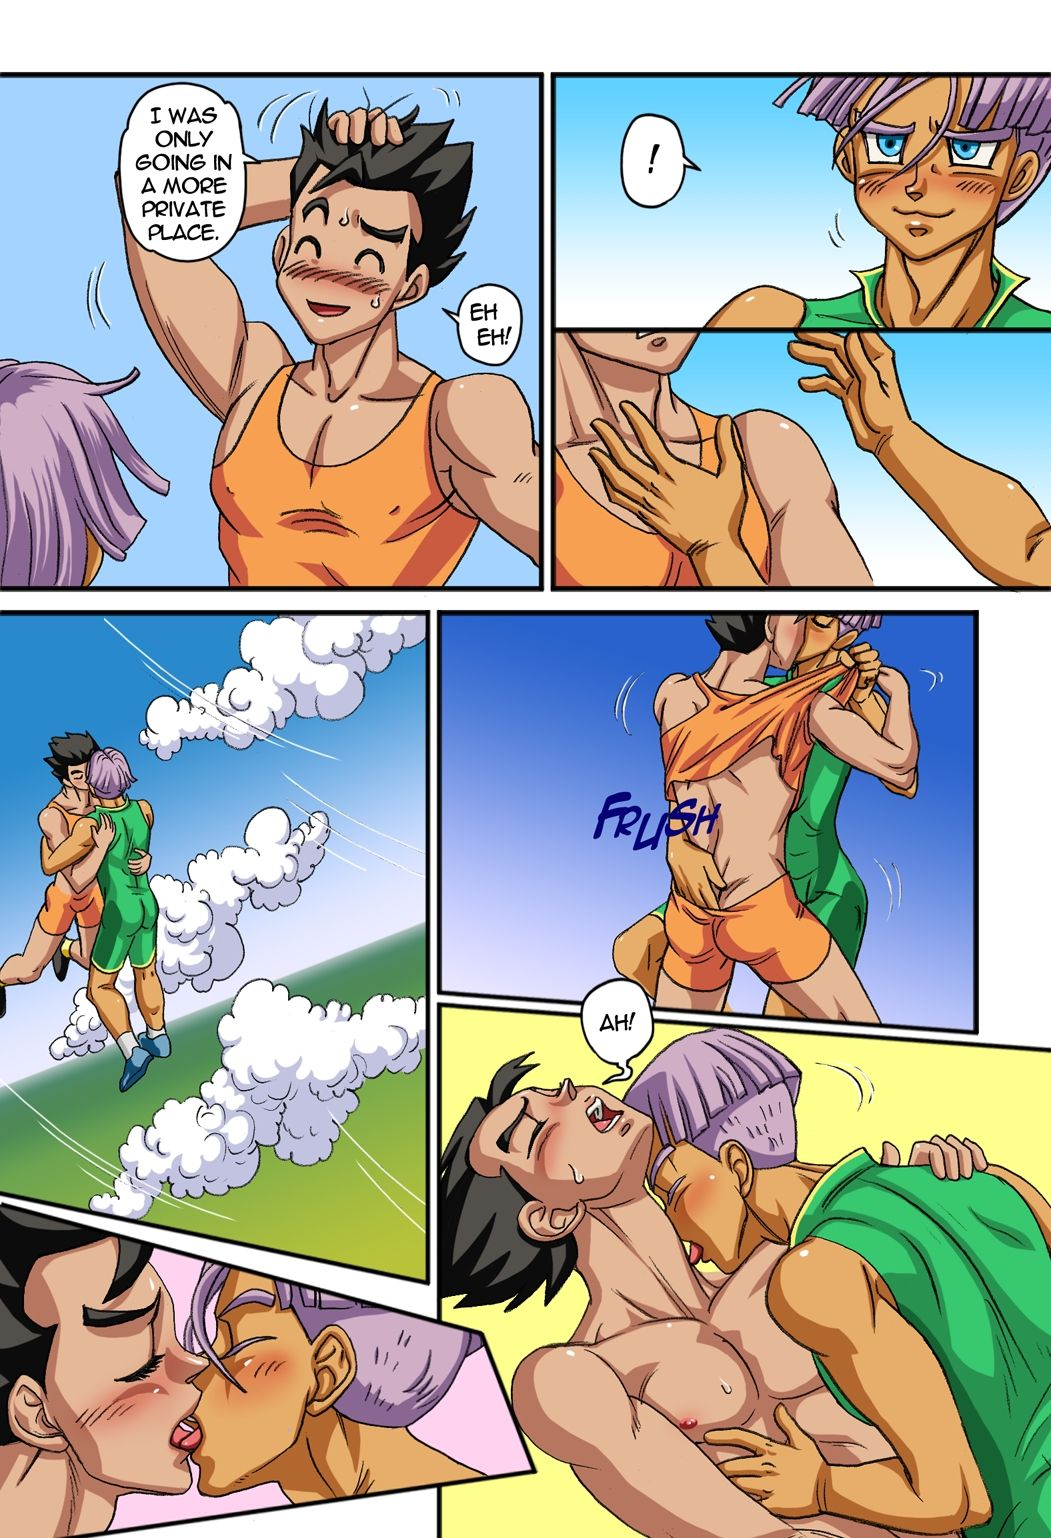 We are proud to be your choice for DBZ Yaoi, Gay, Bara, or Shota